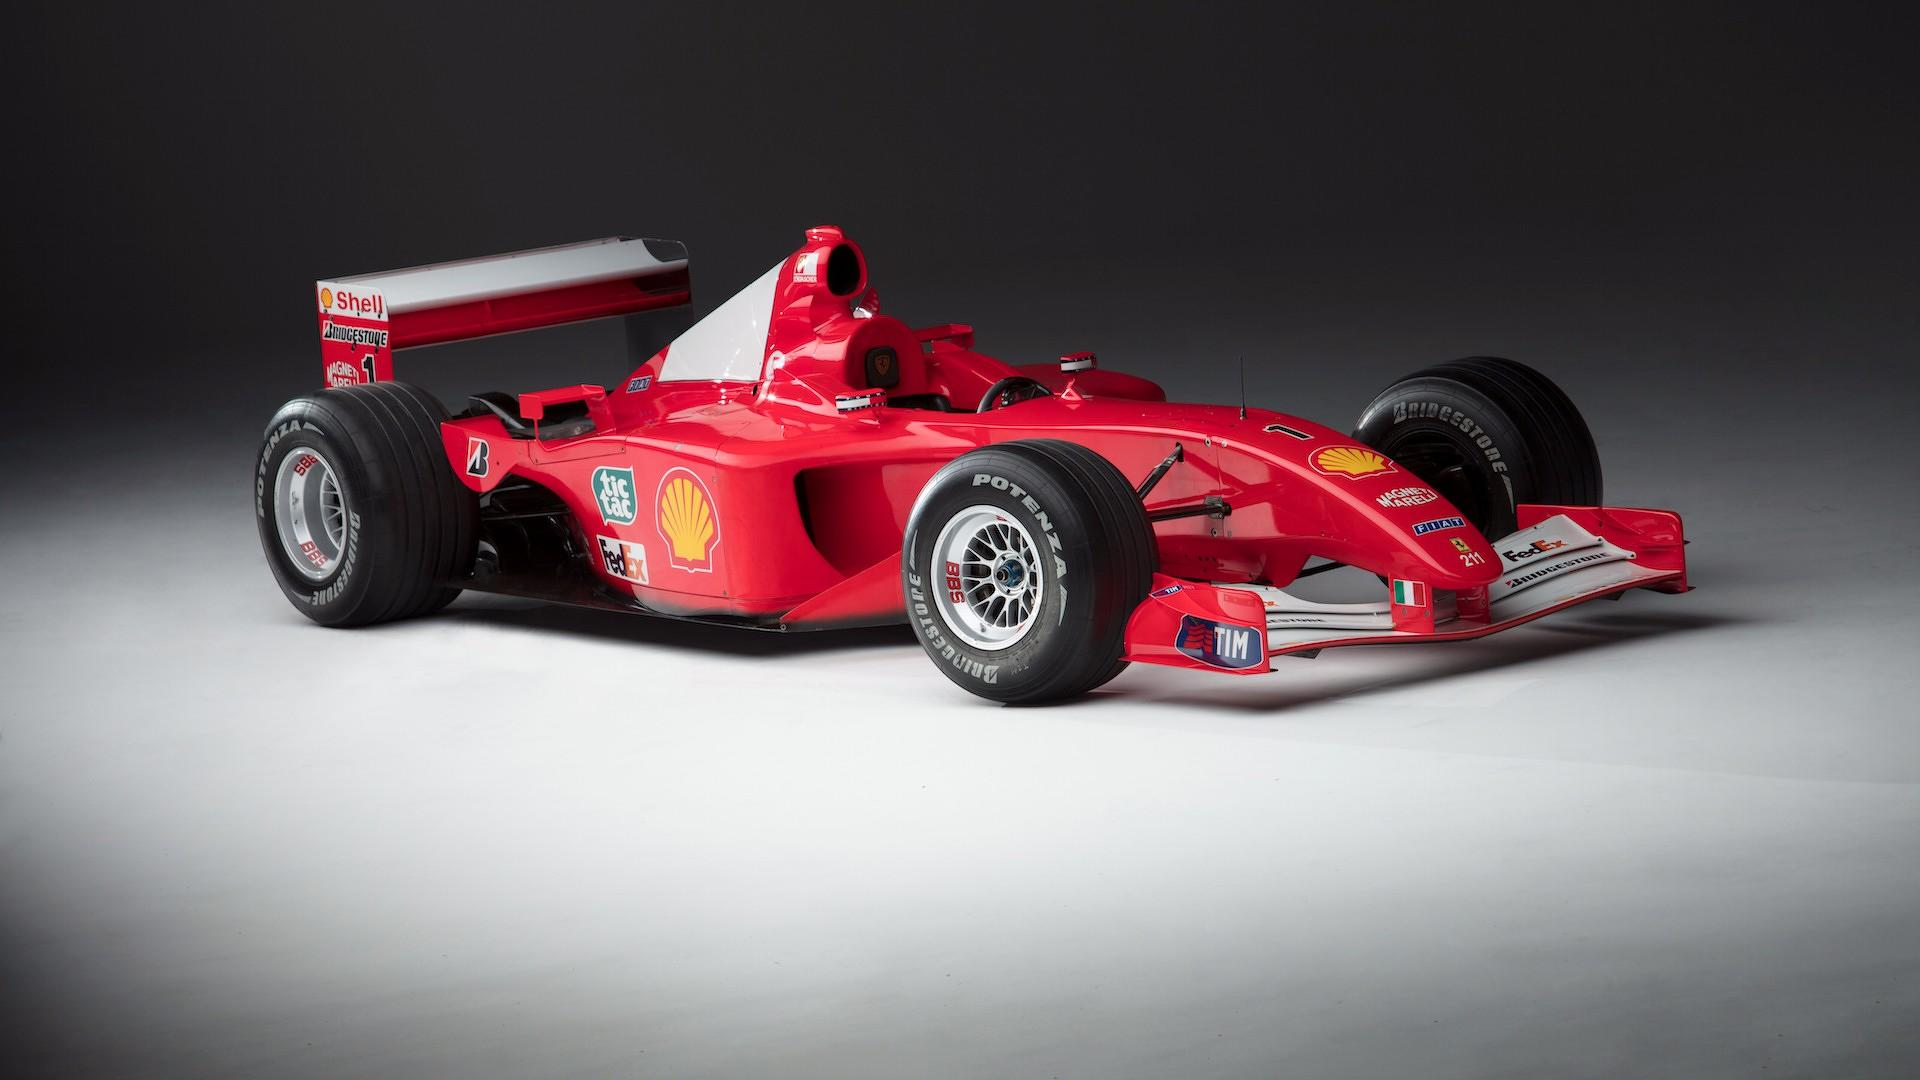 A rare chance to own one of Michael Schumacher's F1 race cars